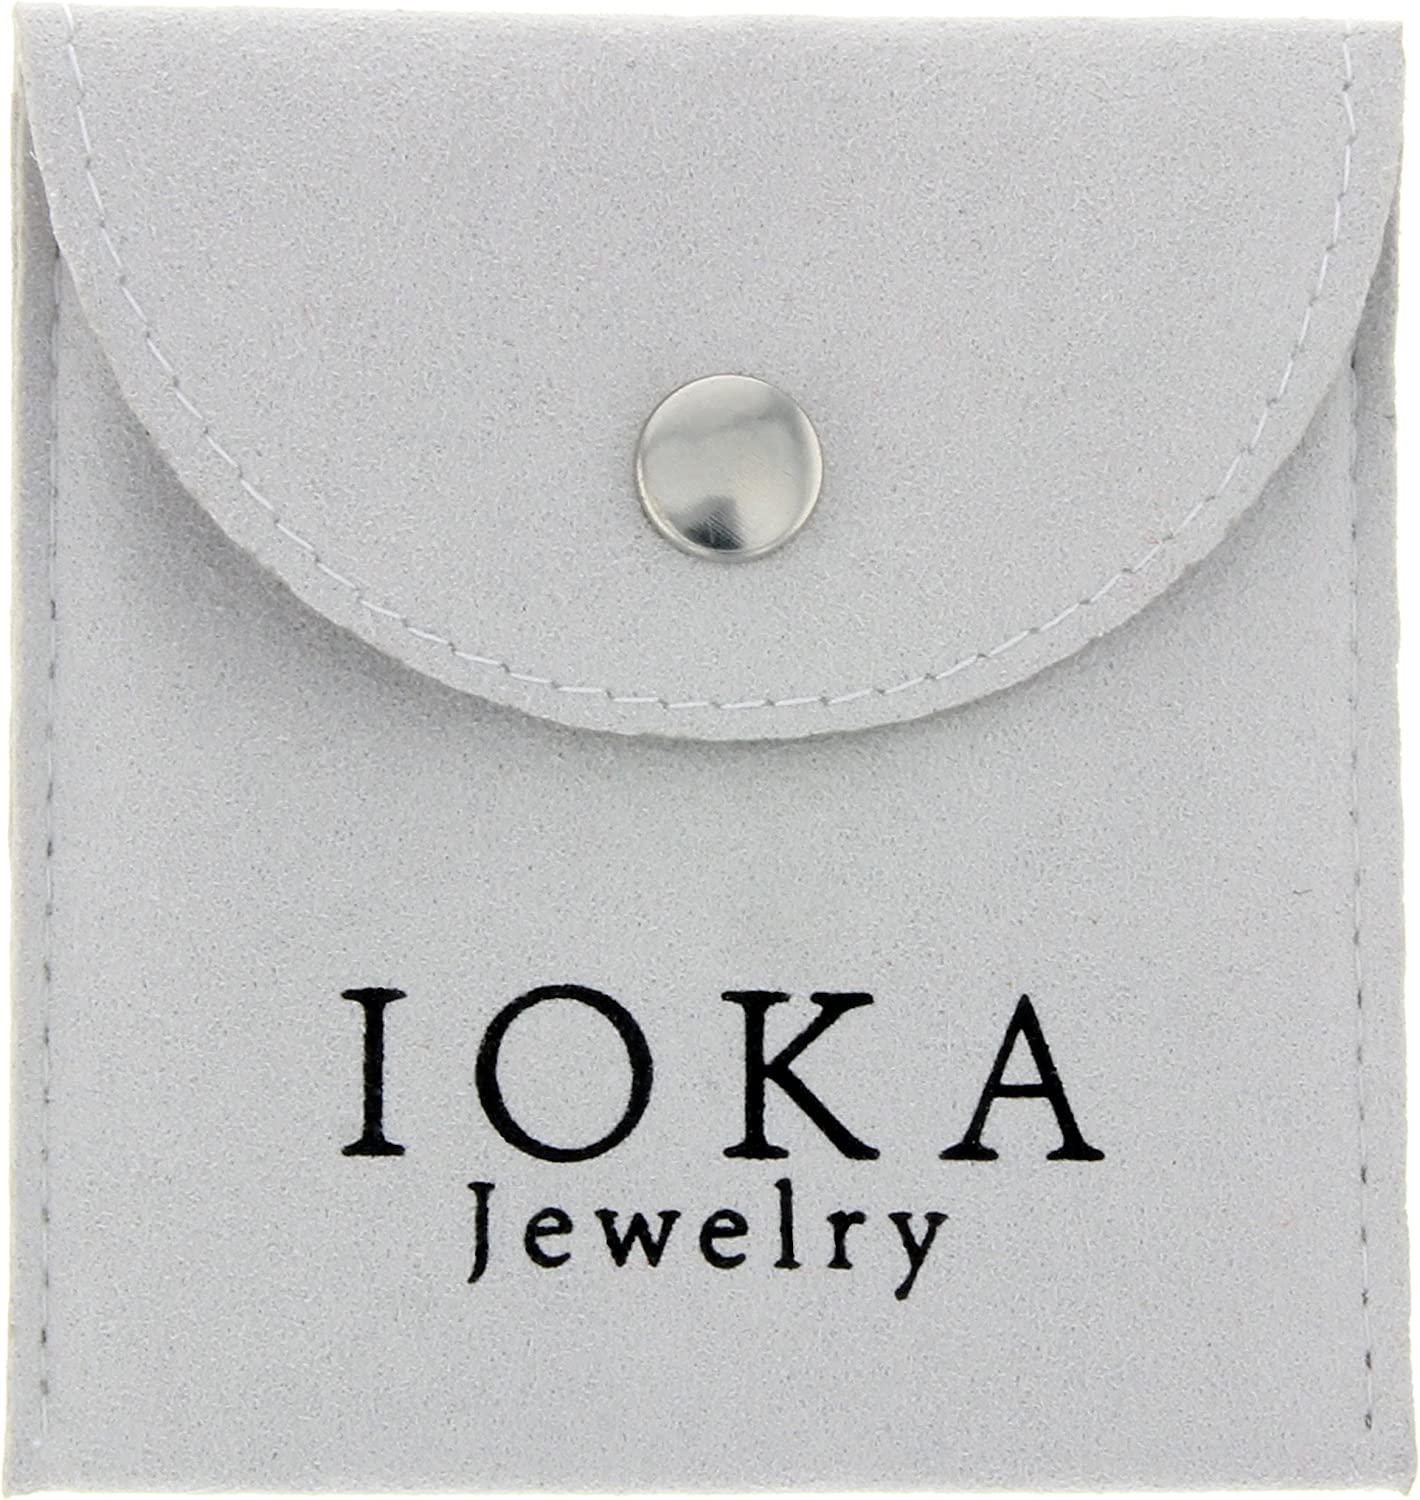 14K Yellow Gold Oval Locket Charm Pendant For Necklace or Chain Ioka